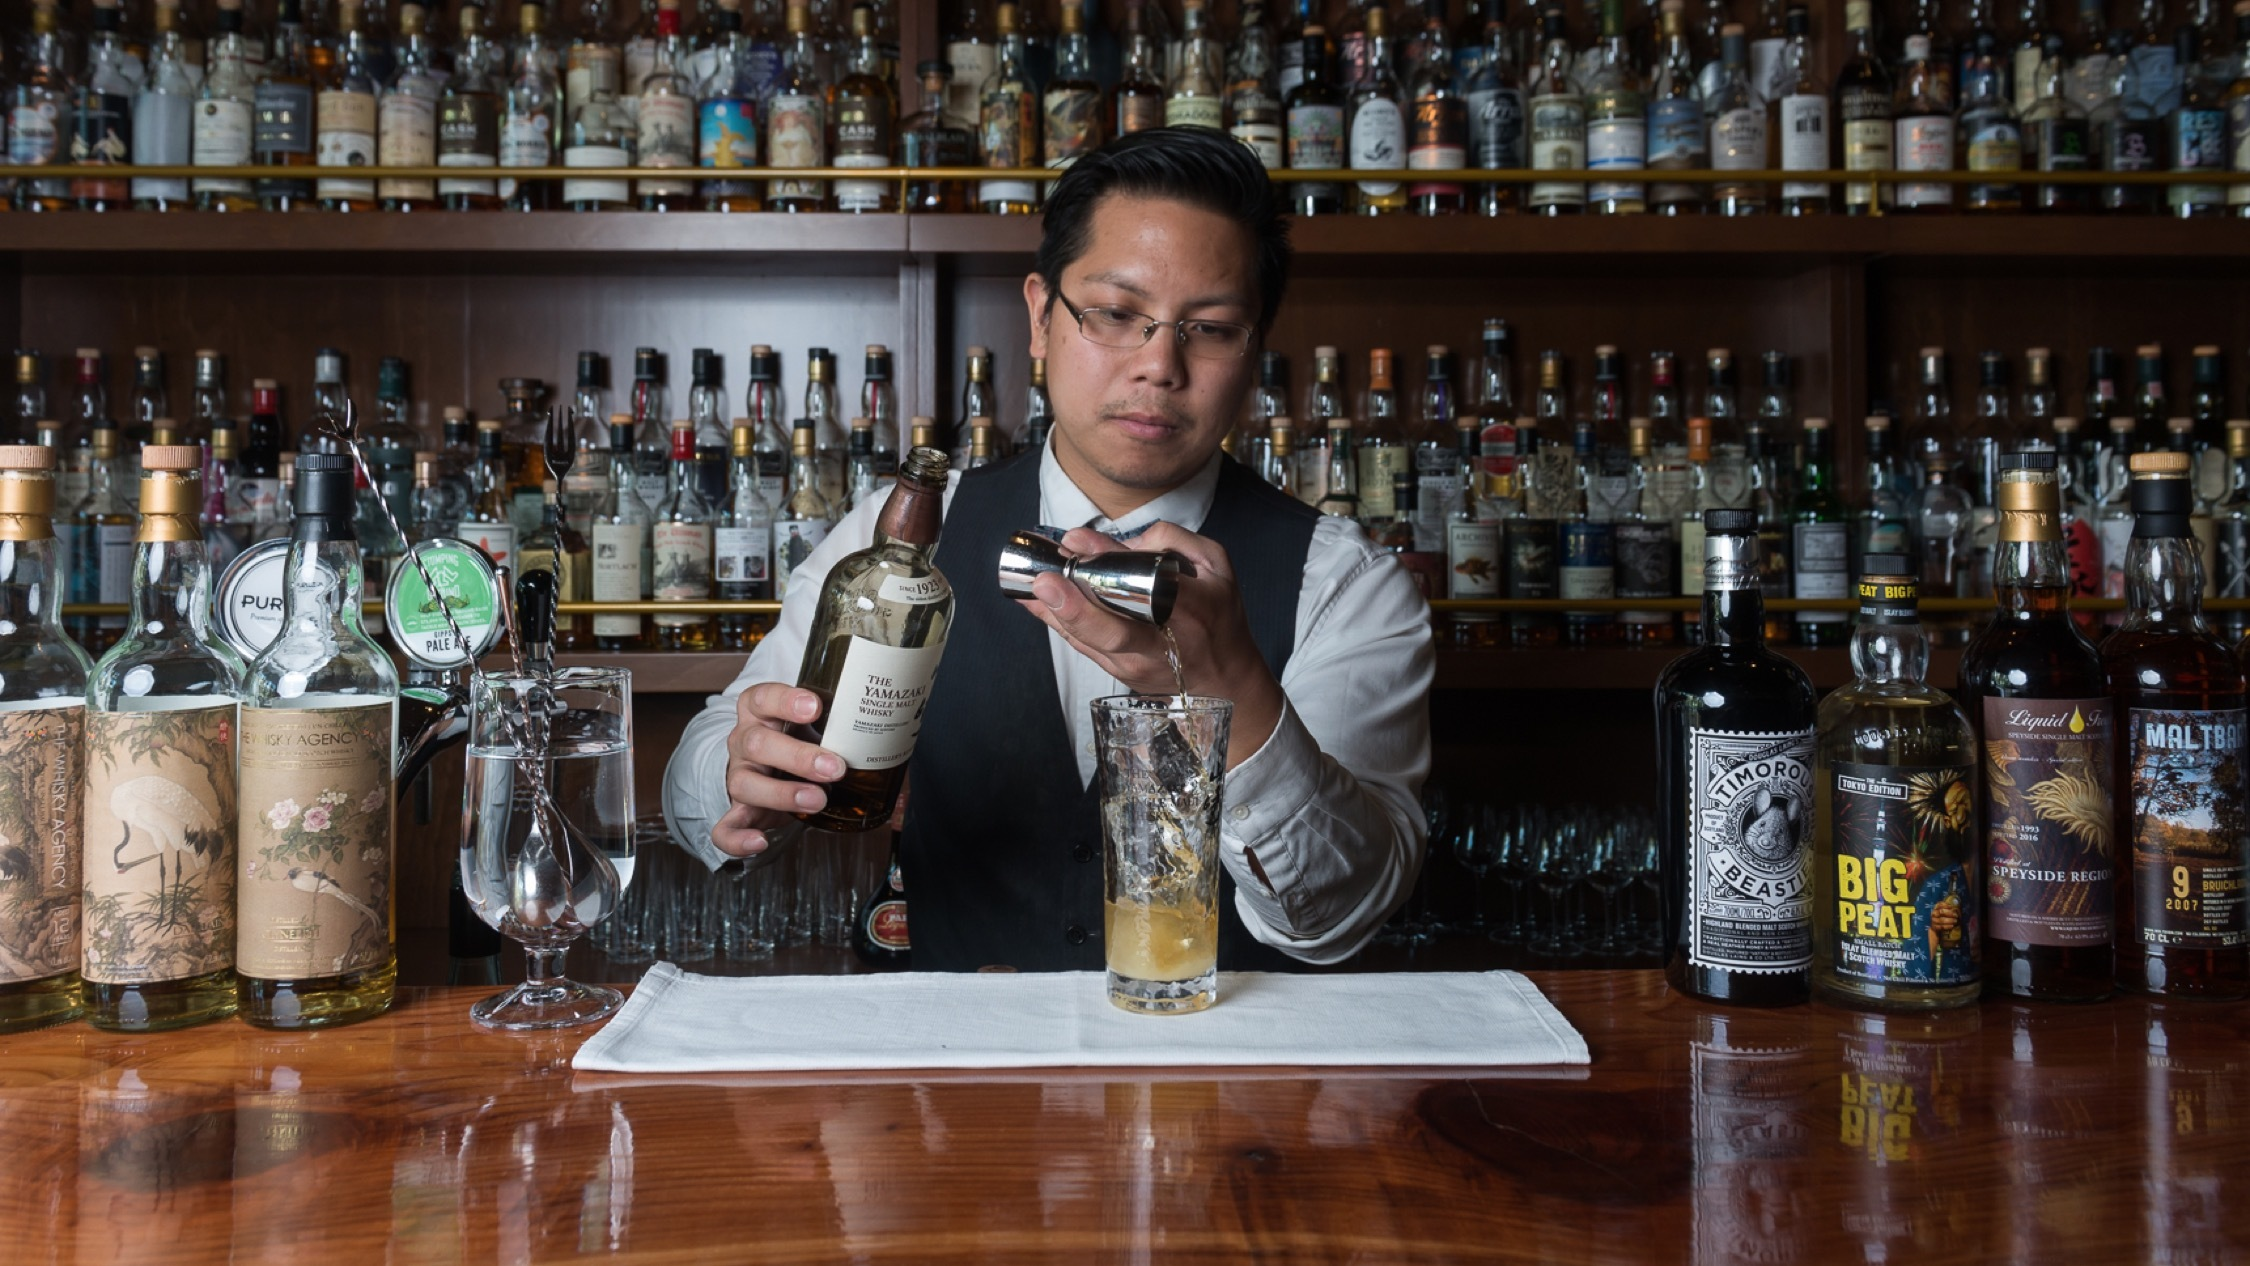 Yao Wong of the Elysian is feeding out-of-work hospitality staff